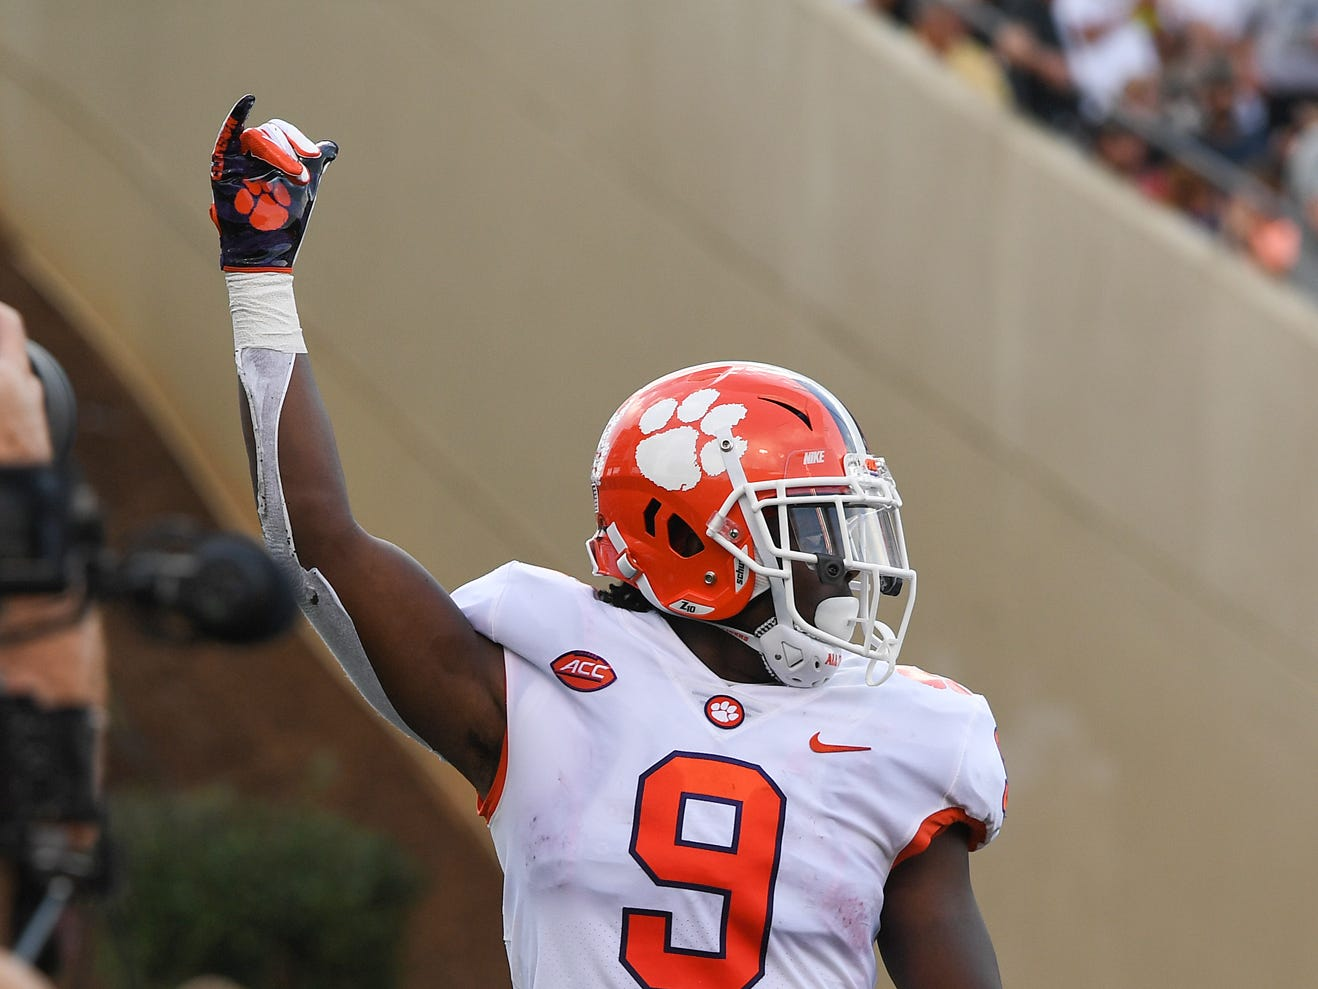 Clemson running back Travis Etienne (9) celebrates after racing 59 yards to score against Wake Forest during the 1st quarter at BB&T Field in Winston Salem, N.C. Saturday, October 6, 2018.